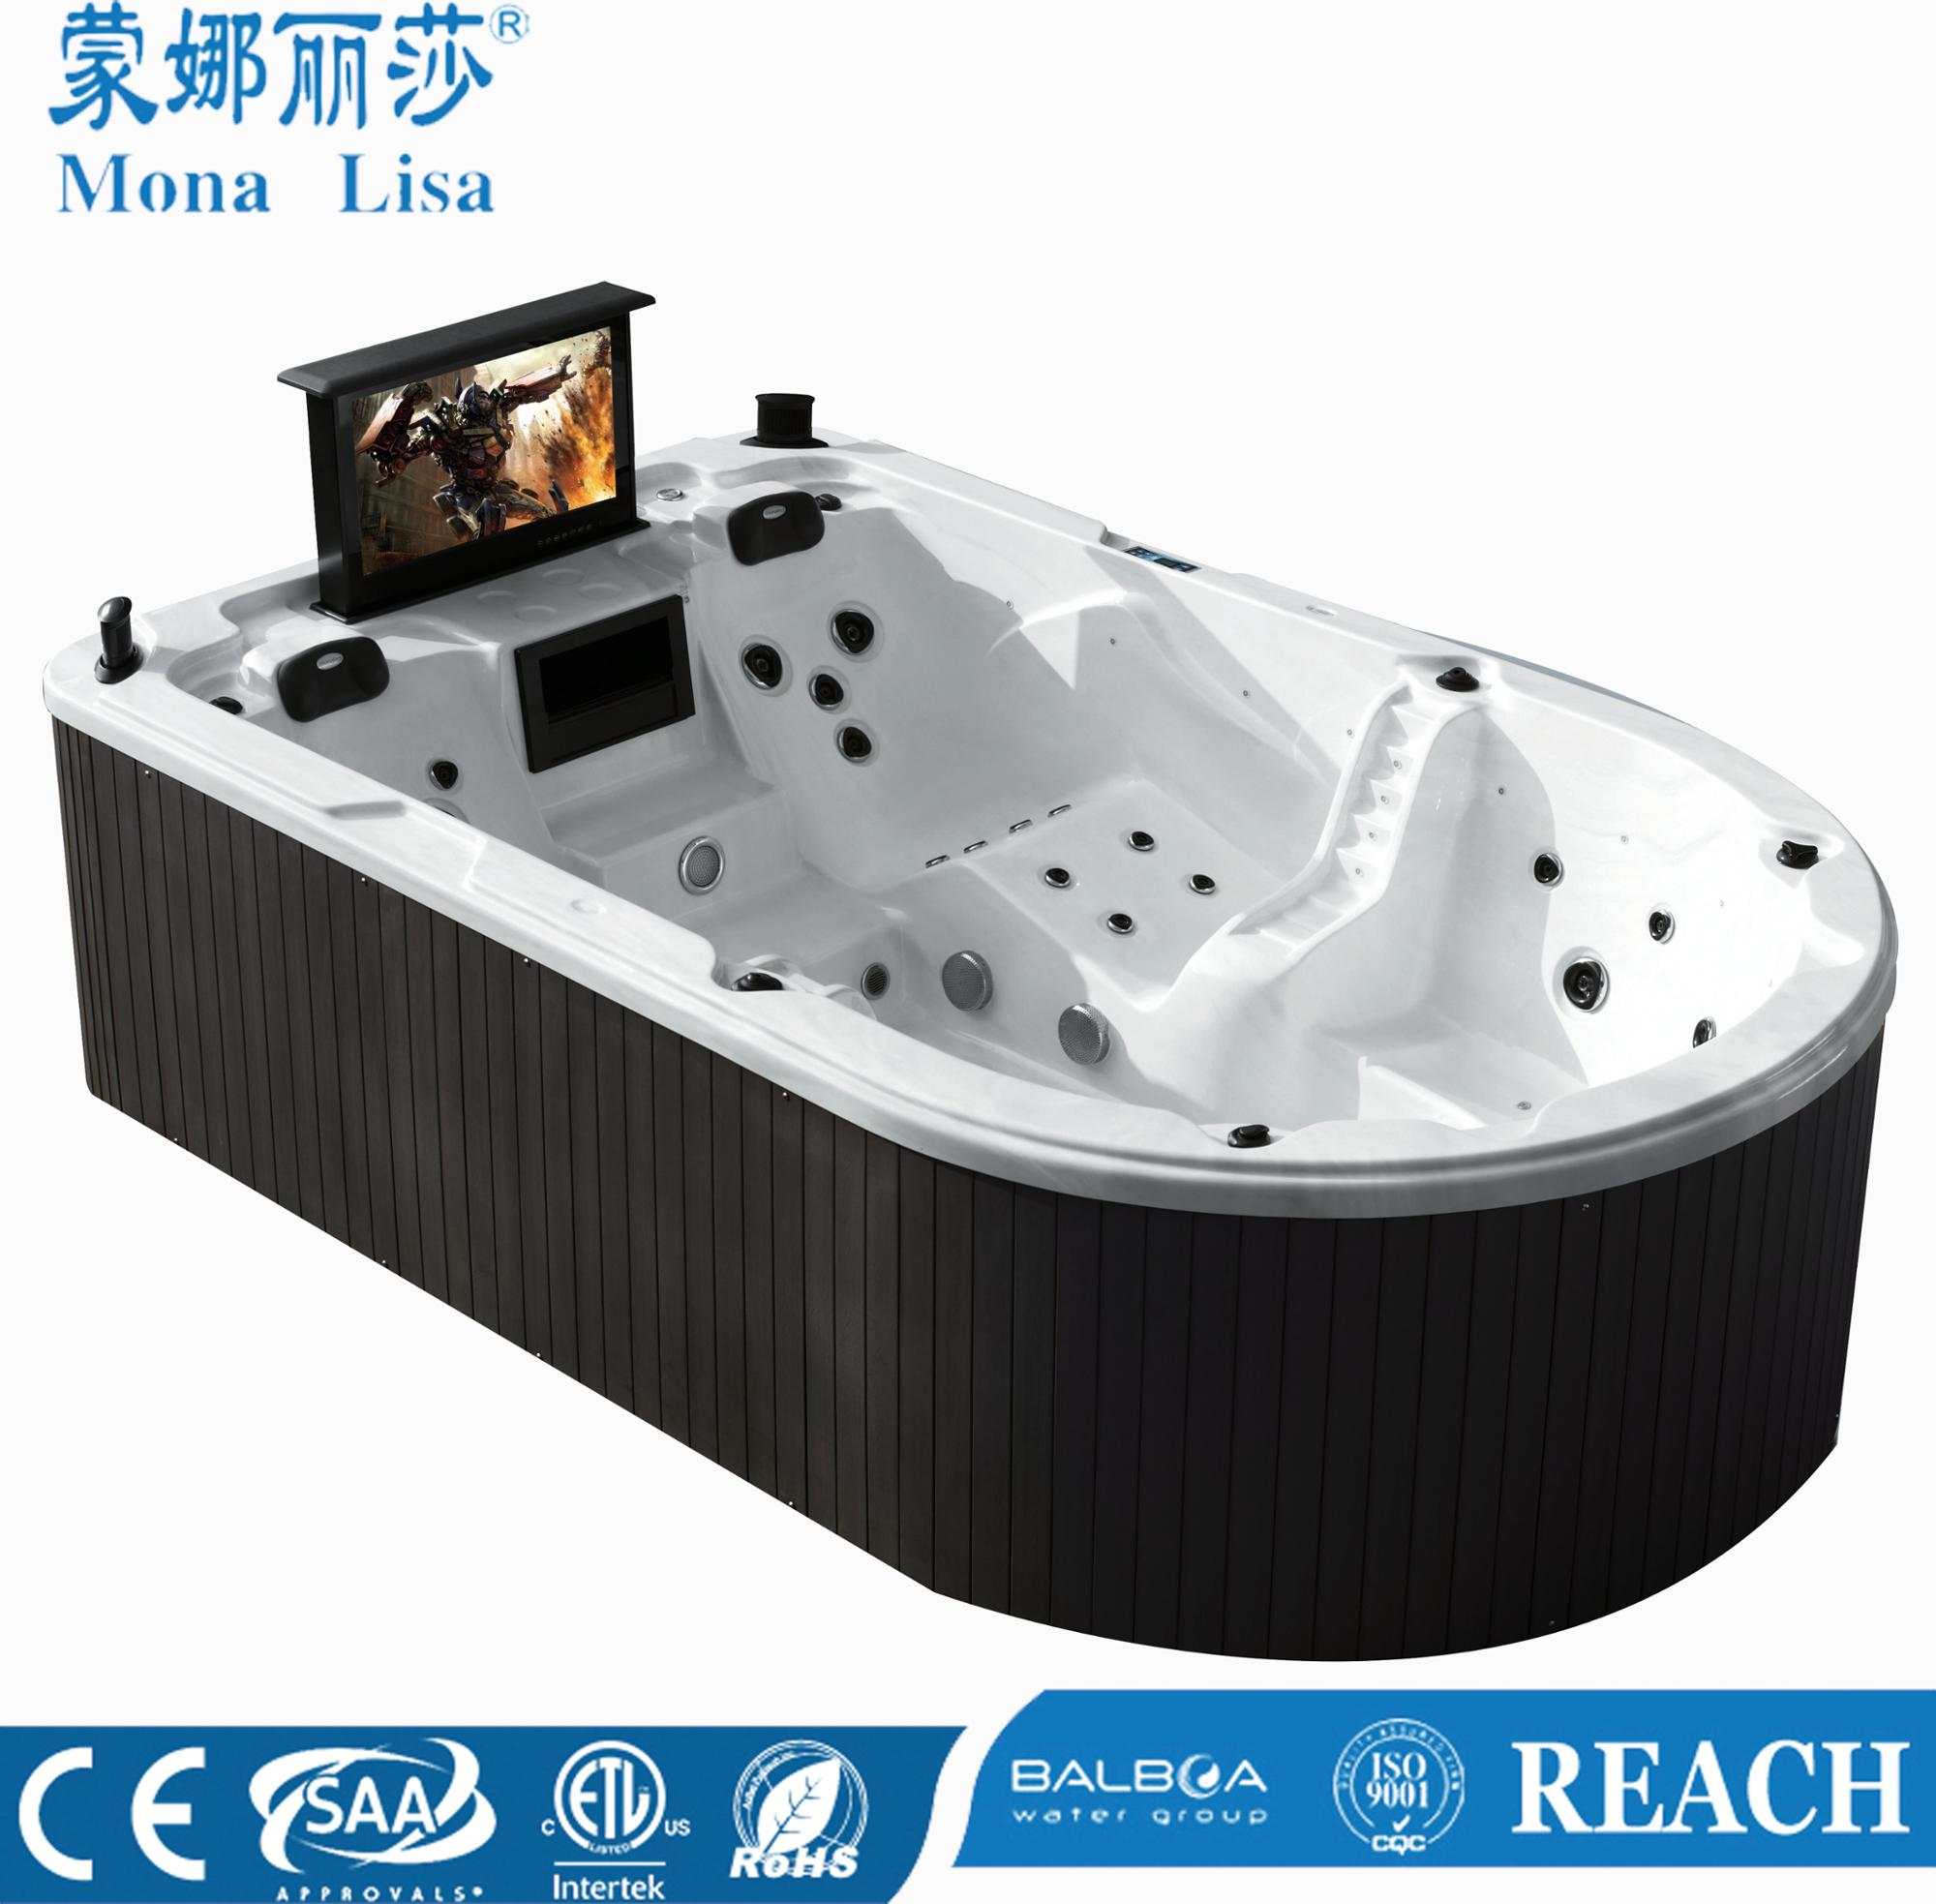 of bliss product with fever sleeps tub hot flat bedroom rooster the way tv cabin panel soak a original moonlit